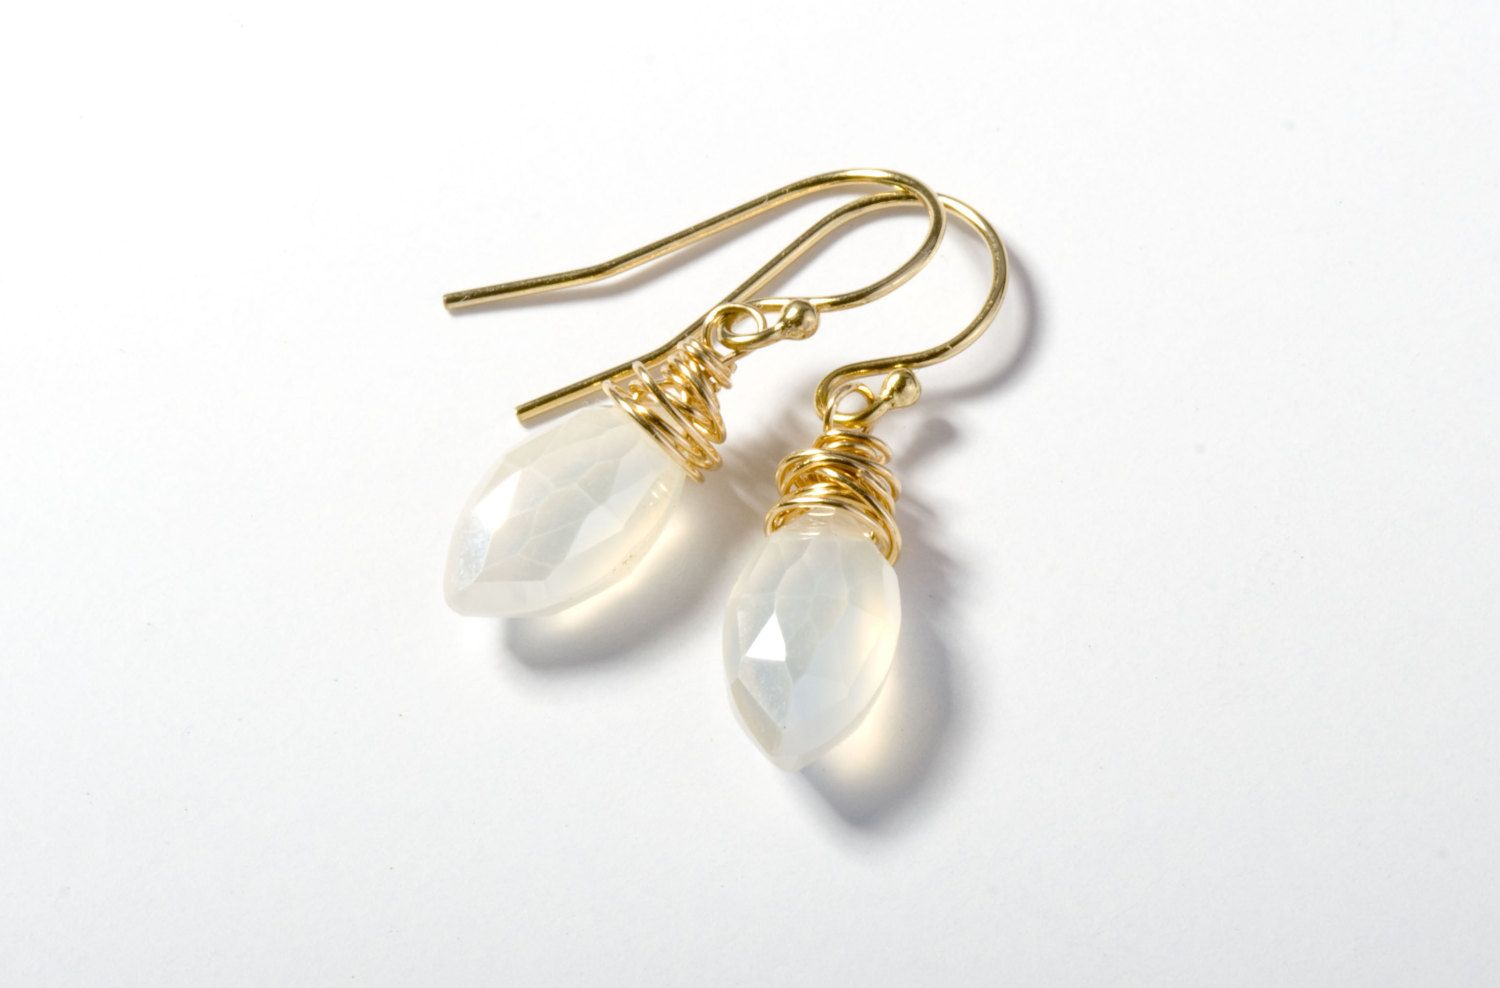 misskukie notonthehighstreet gold original by product earrings delicate com drop